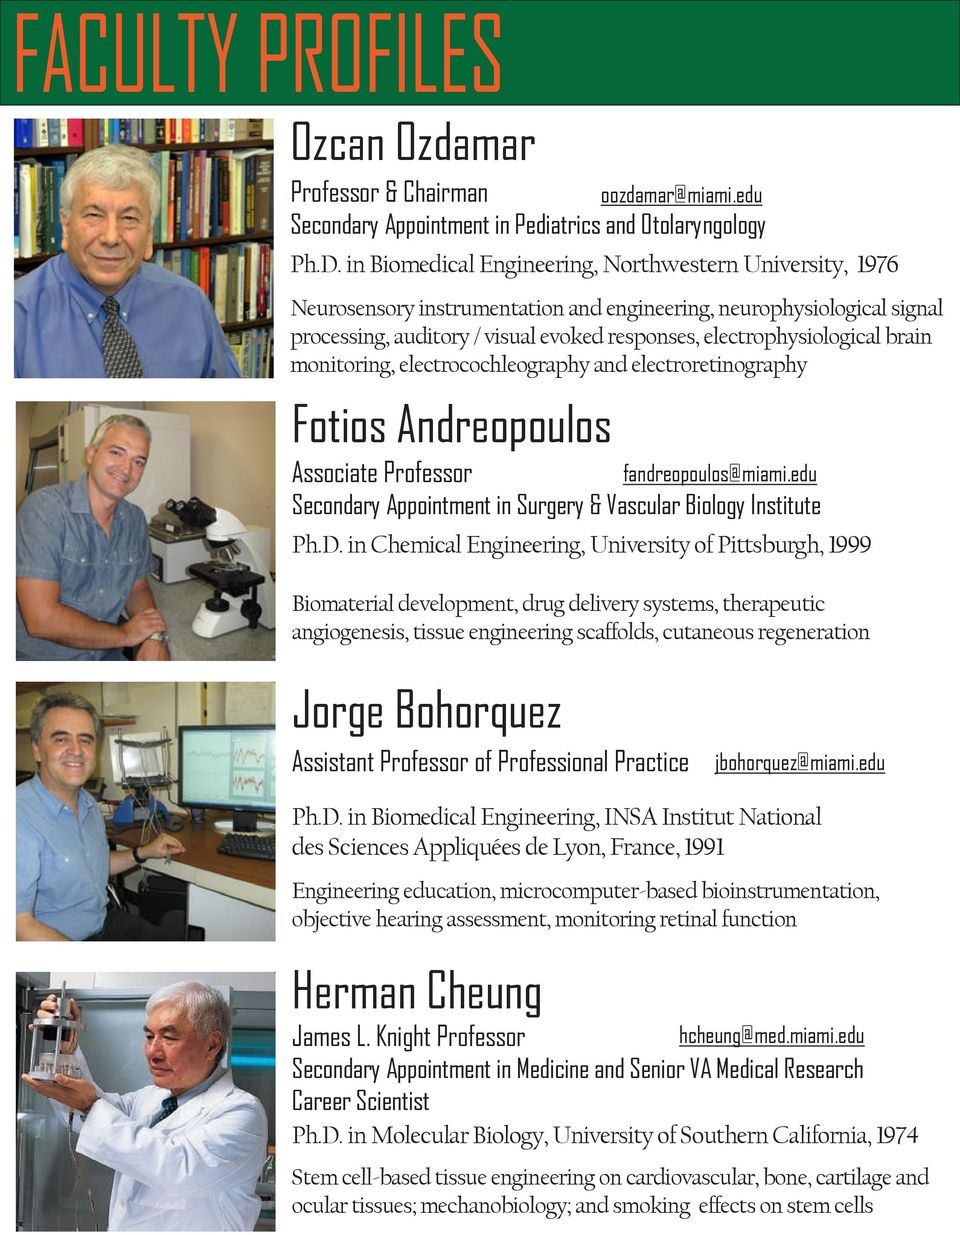 brain monitoring, electrocochleography and electroretinography Fotios Andreopoulos Associate Professor fandreopoulos@miami.edu Secondary Appointment in Surgery & Vascular Biology Institute Ph.D.